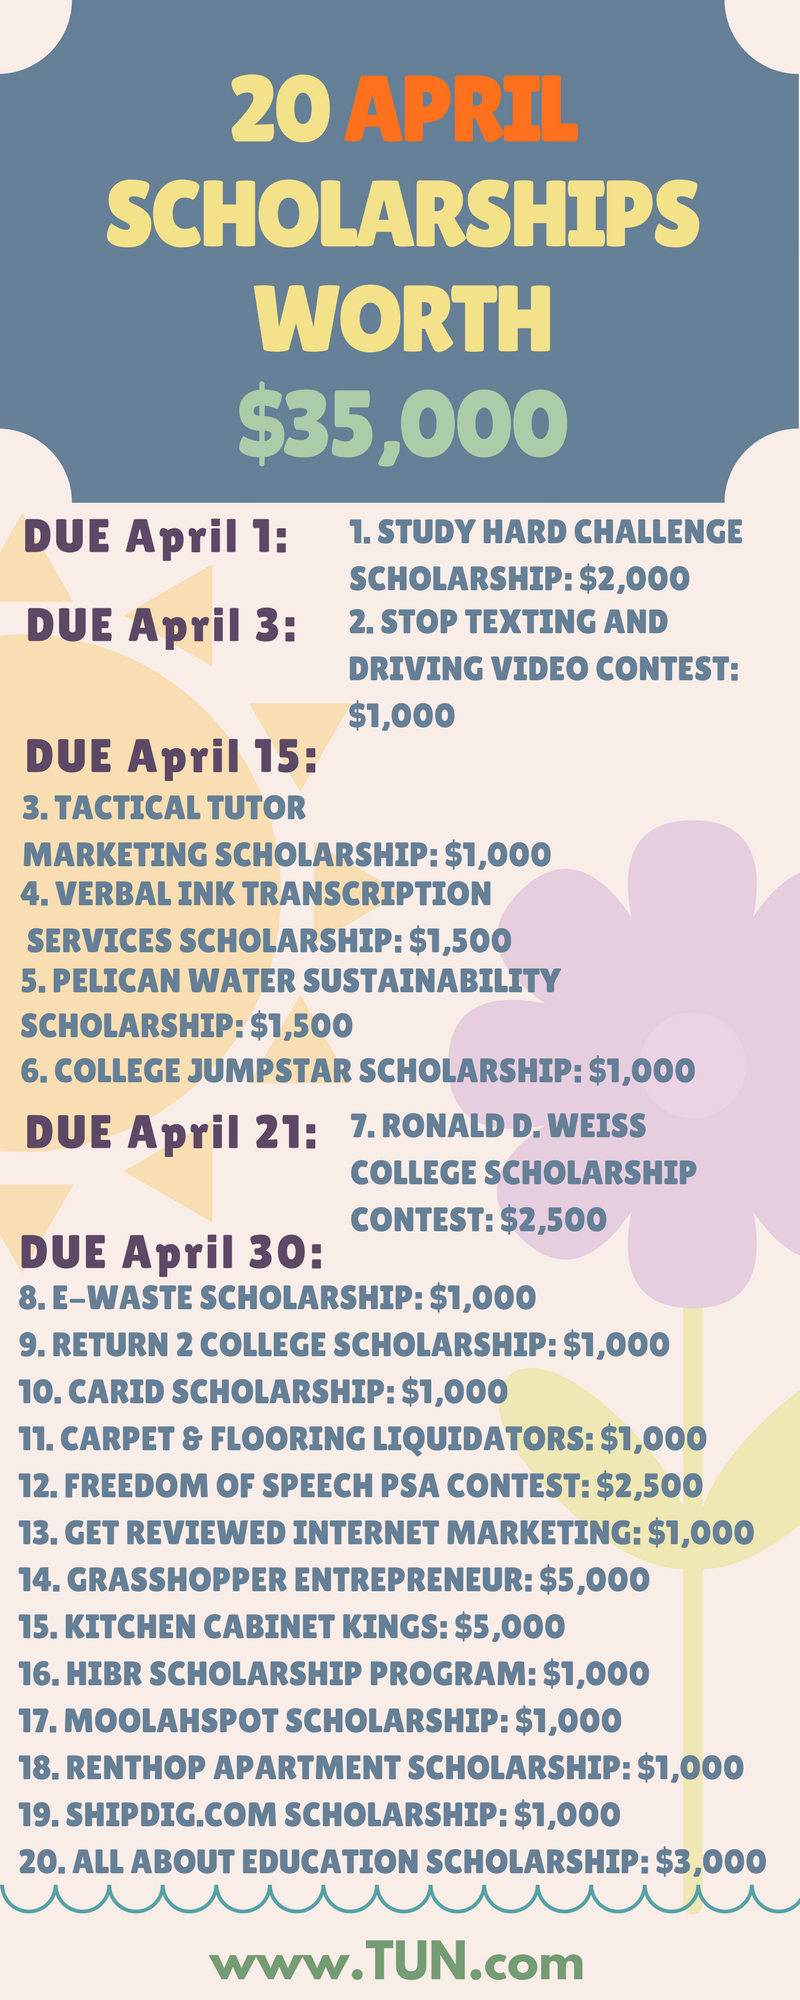 laws of life essay contest scholarship Fun and unique scholarships for high school students scholarship: laws of life essay and video contest company providing scholarship: templeton press.